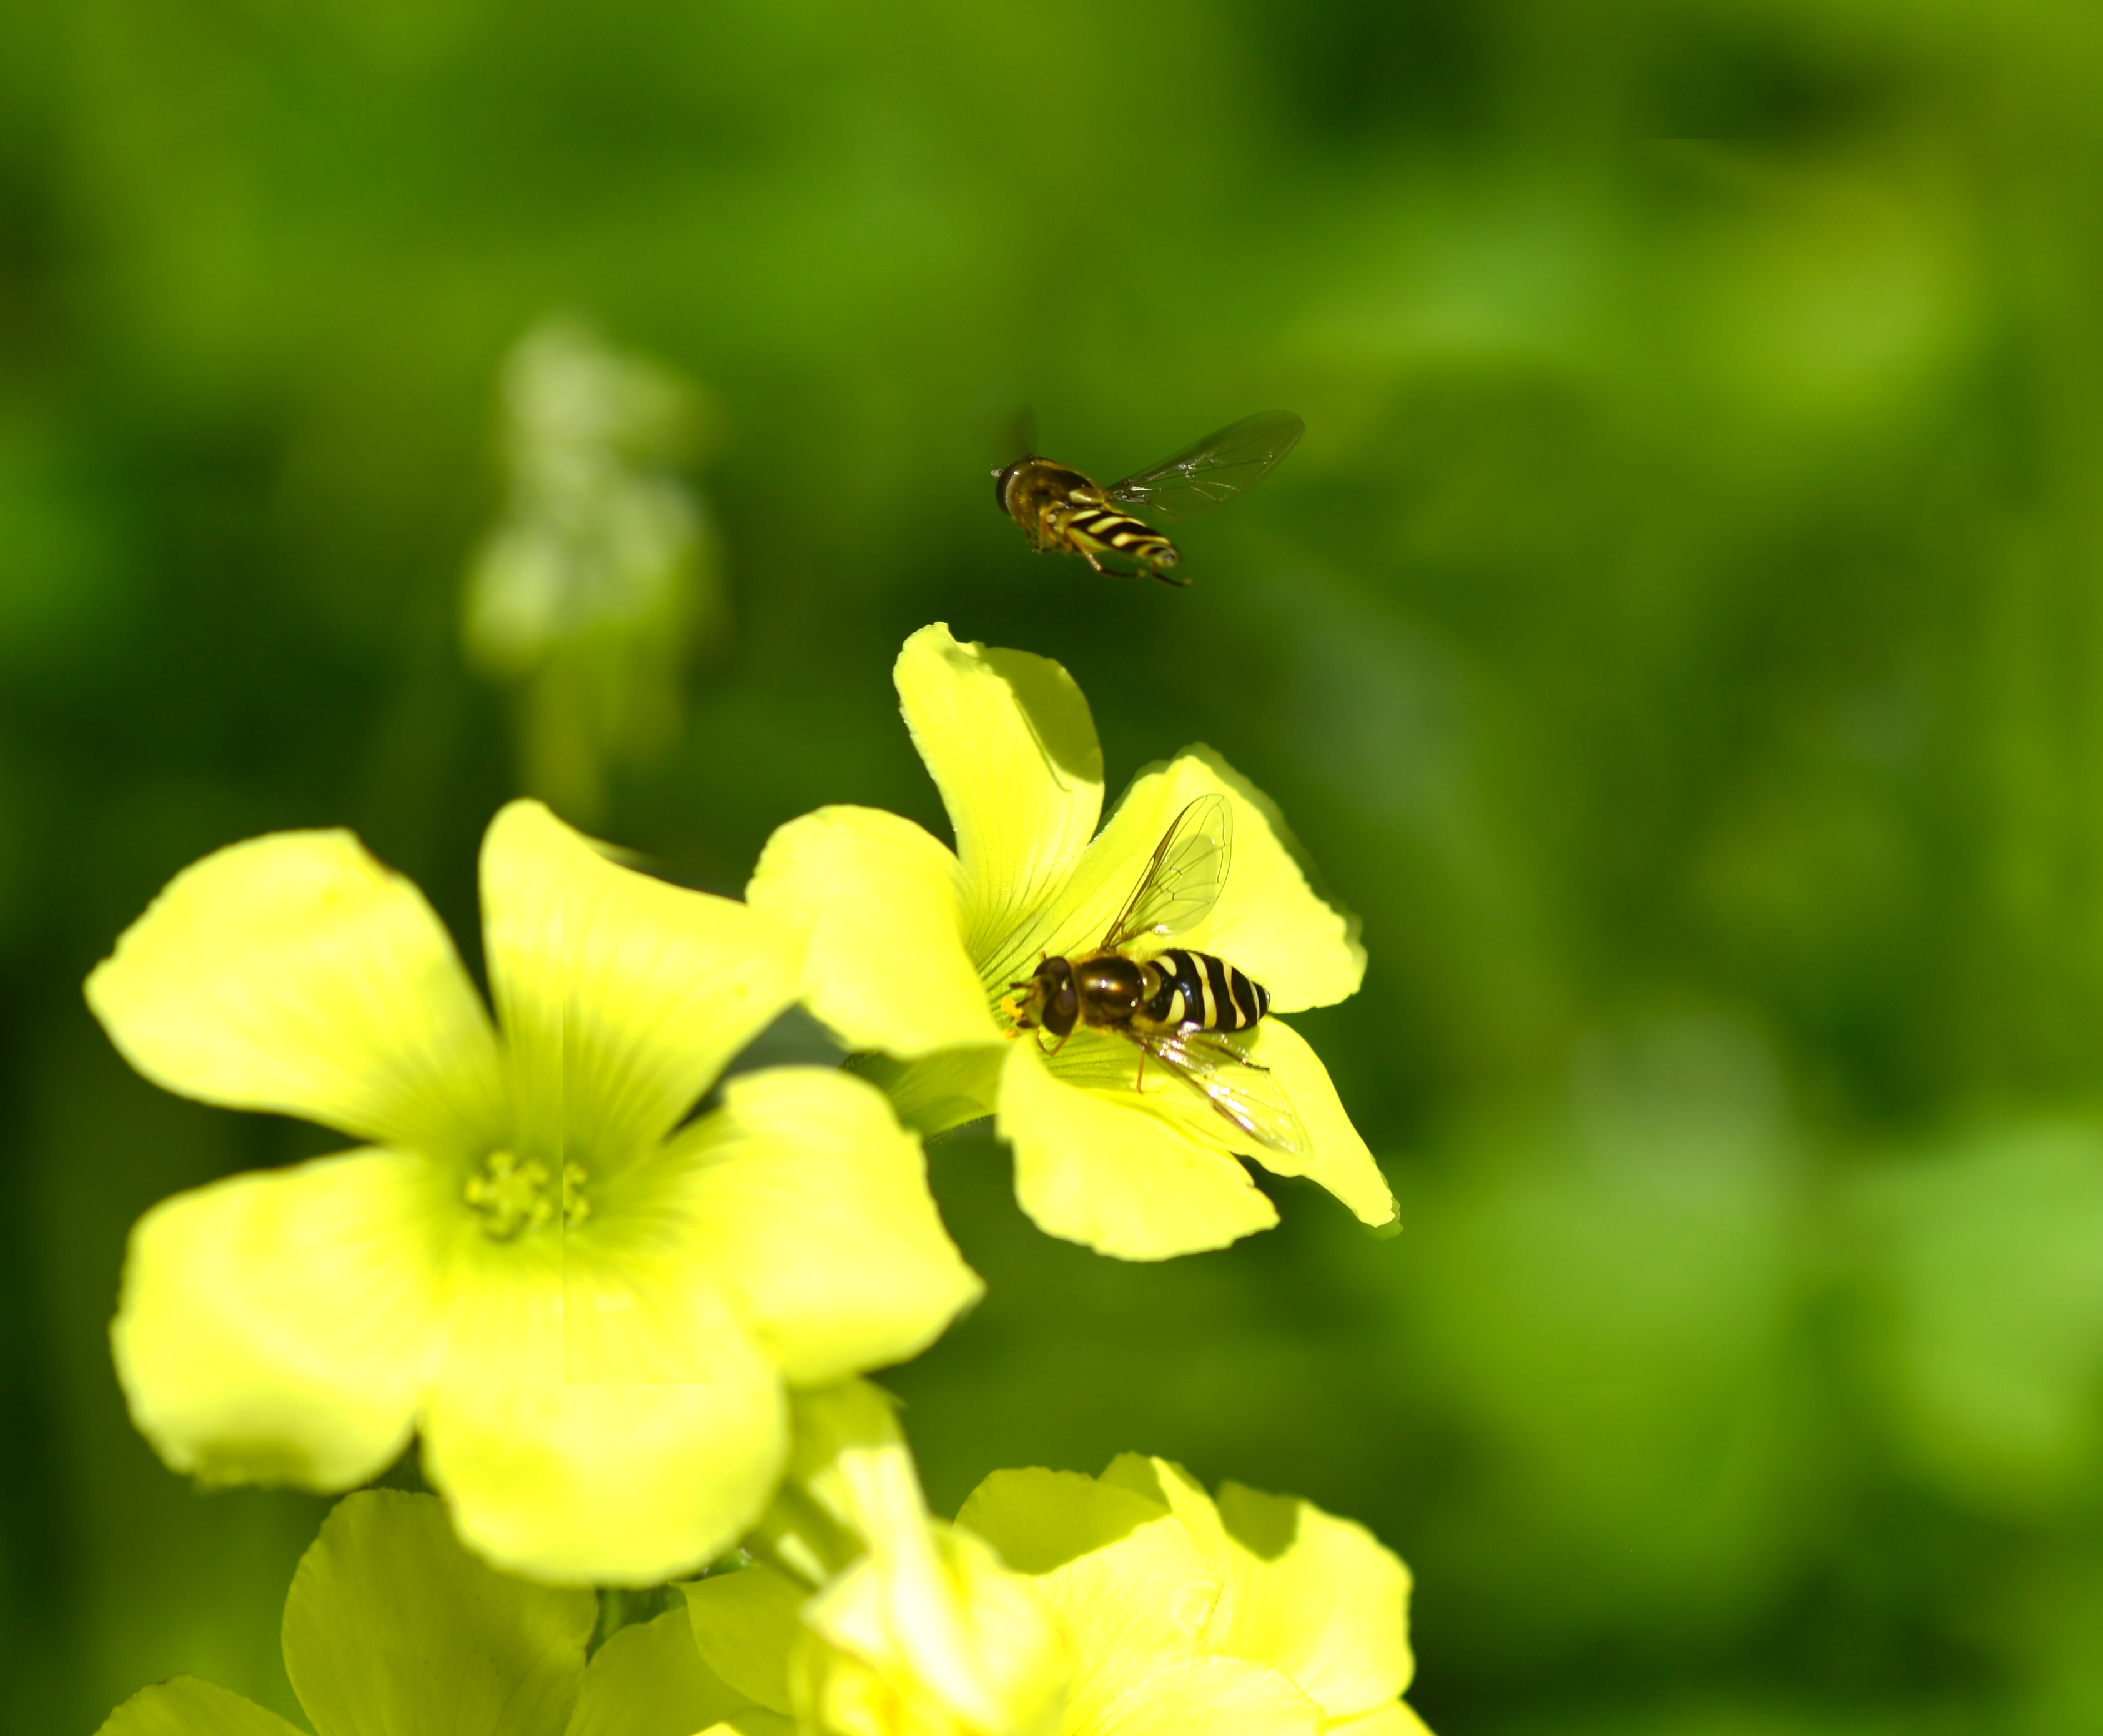 California Bee Wasp in backyard by cognisant